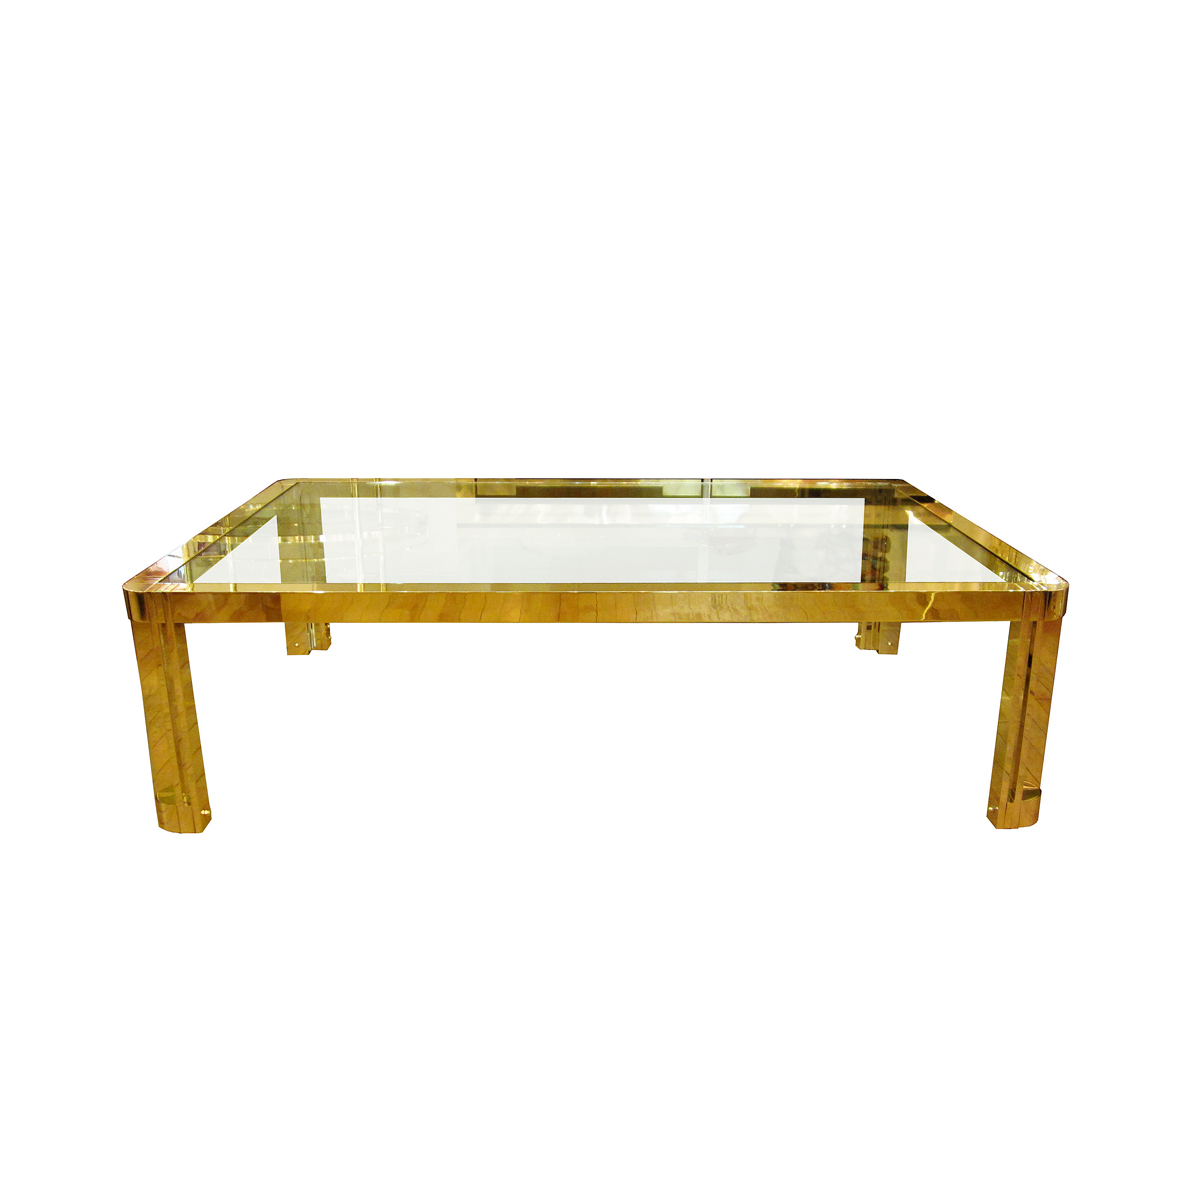 Large Rectangular Brass And Glass Coffee Table With Incised Design Coffee Tables John Salibello